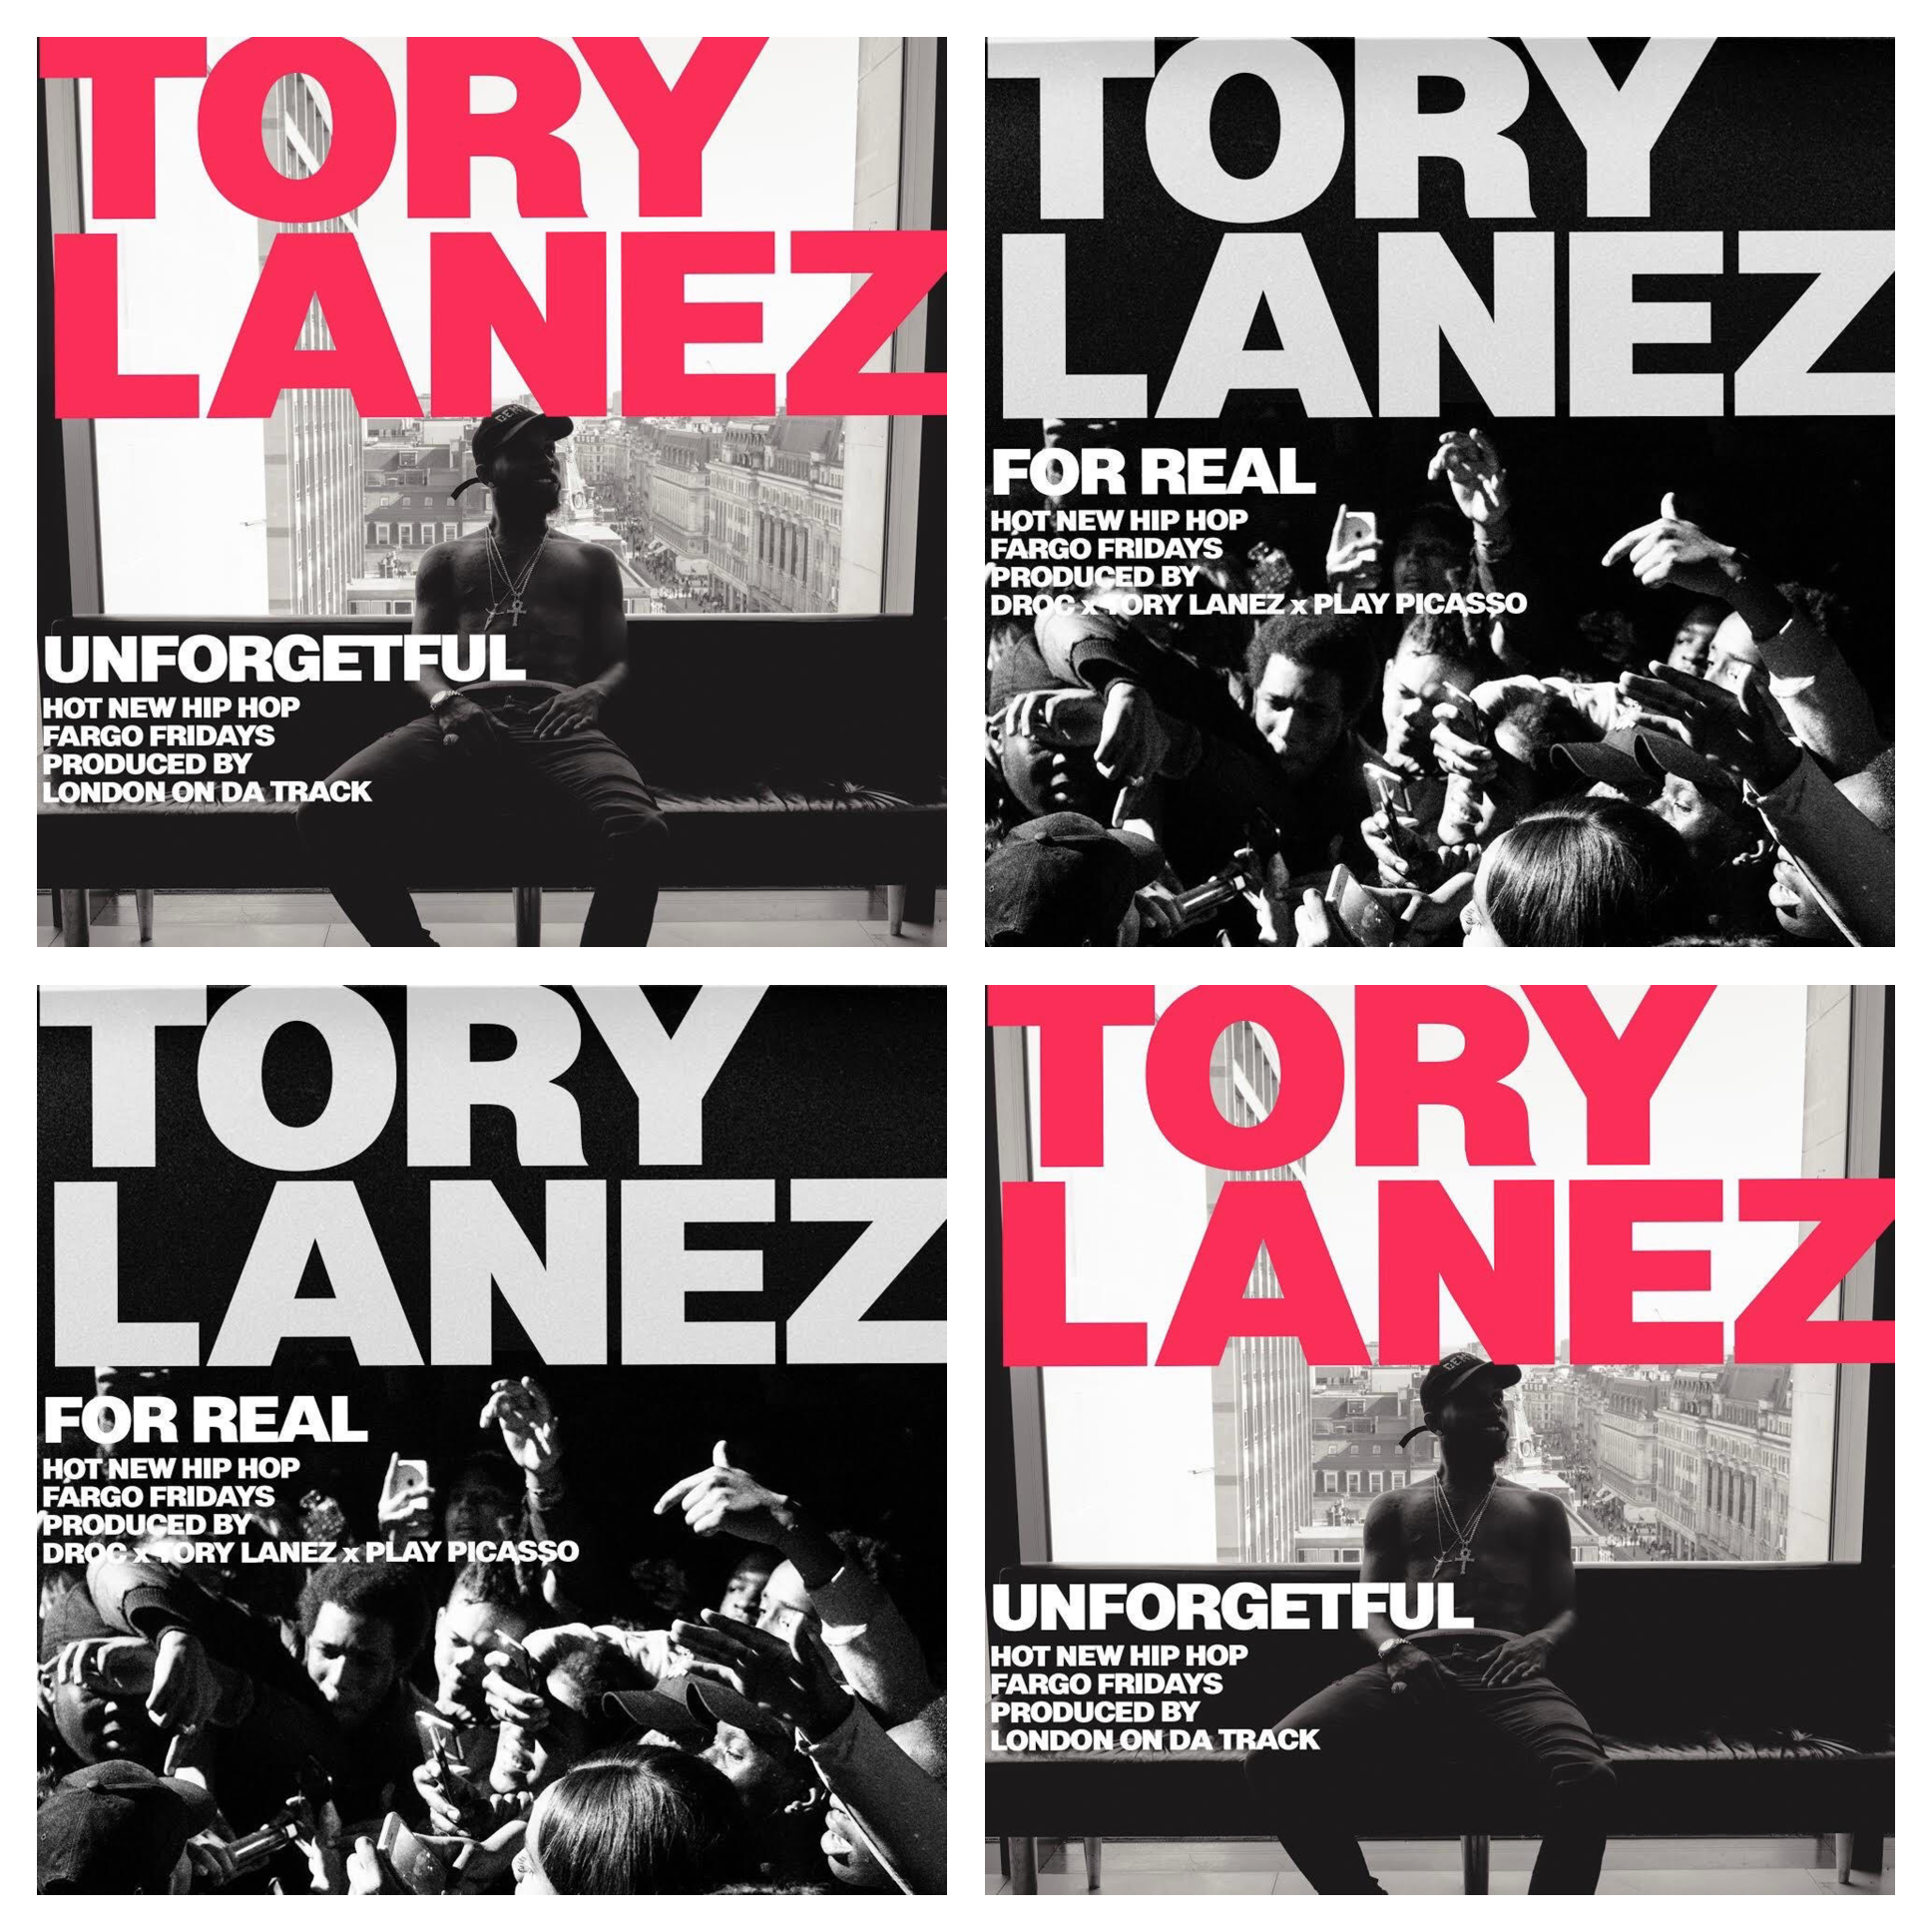 Tory Lanez Release Two New Singles For Real Unforgetful Can I Talk My Ish